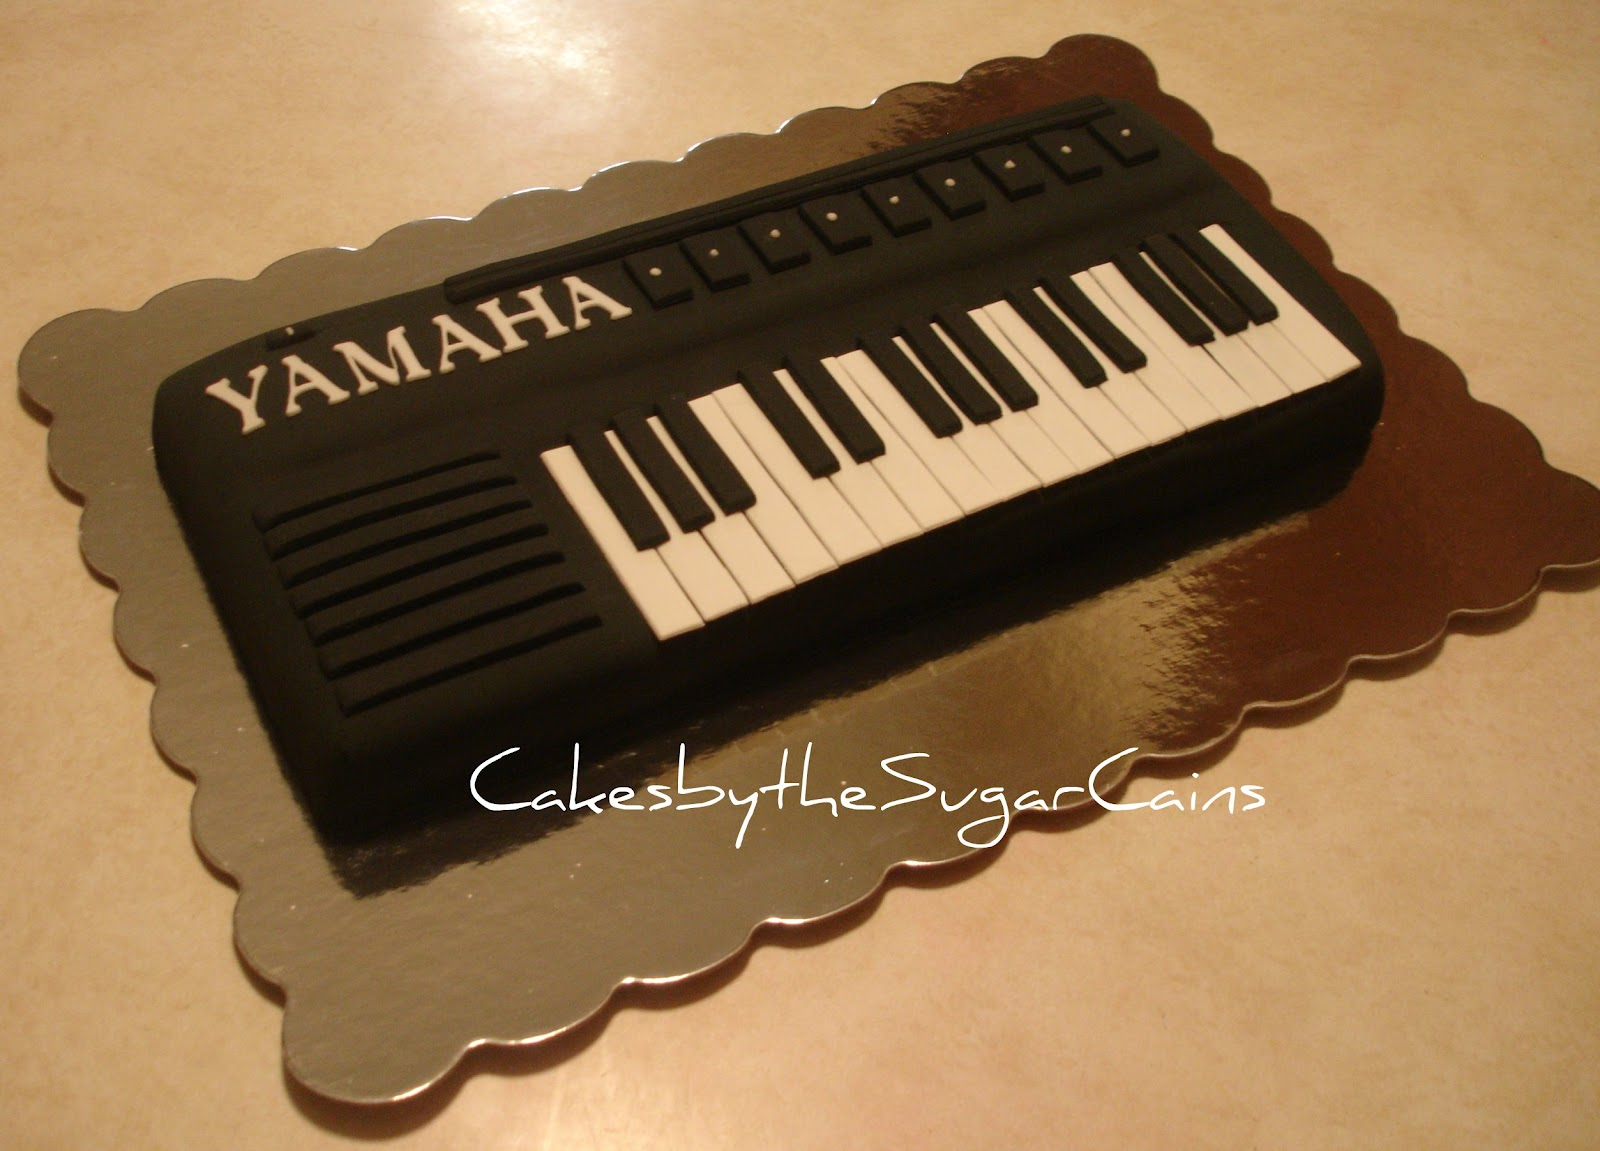 Cakes by the sugar cains joseph 39 s birthday cake 2011 for Decoration yamaha